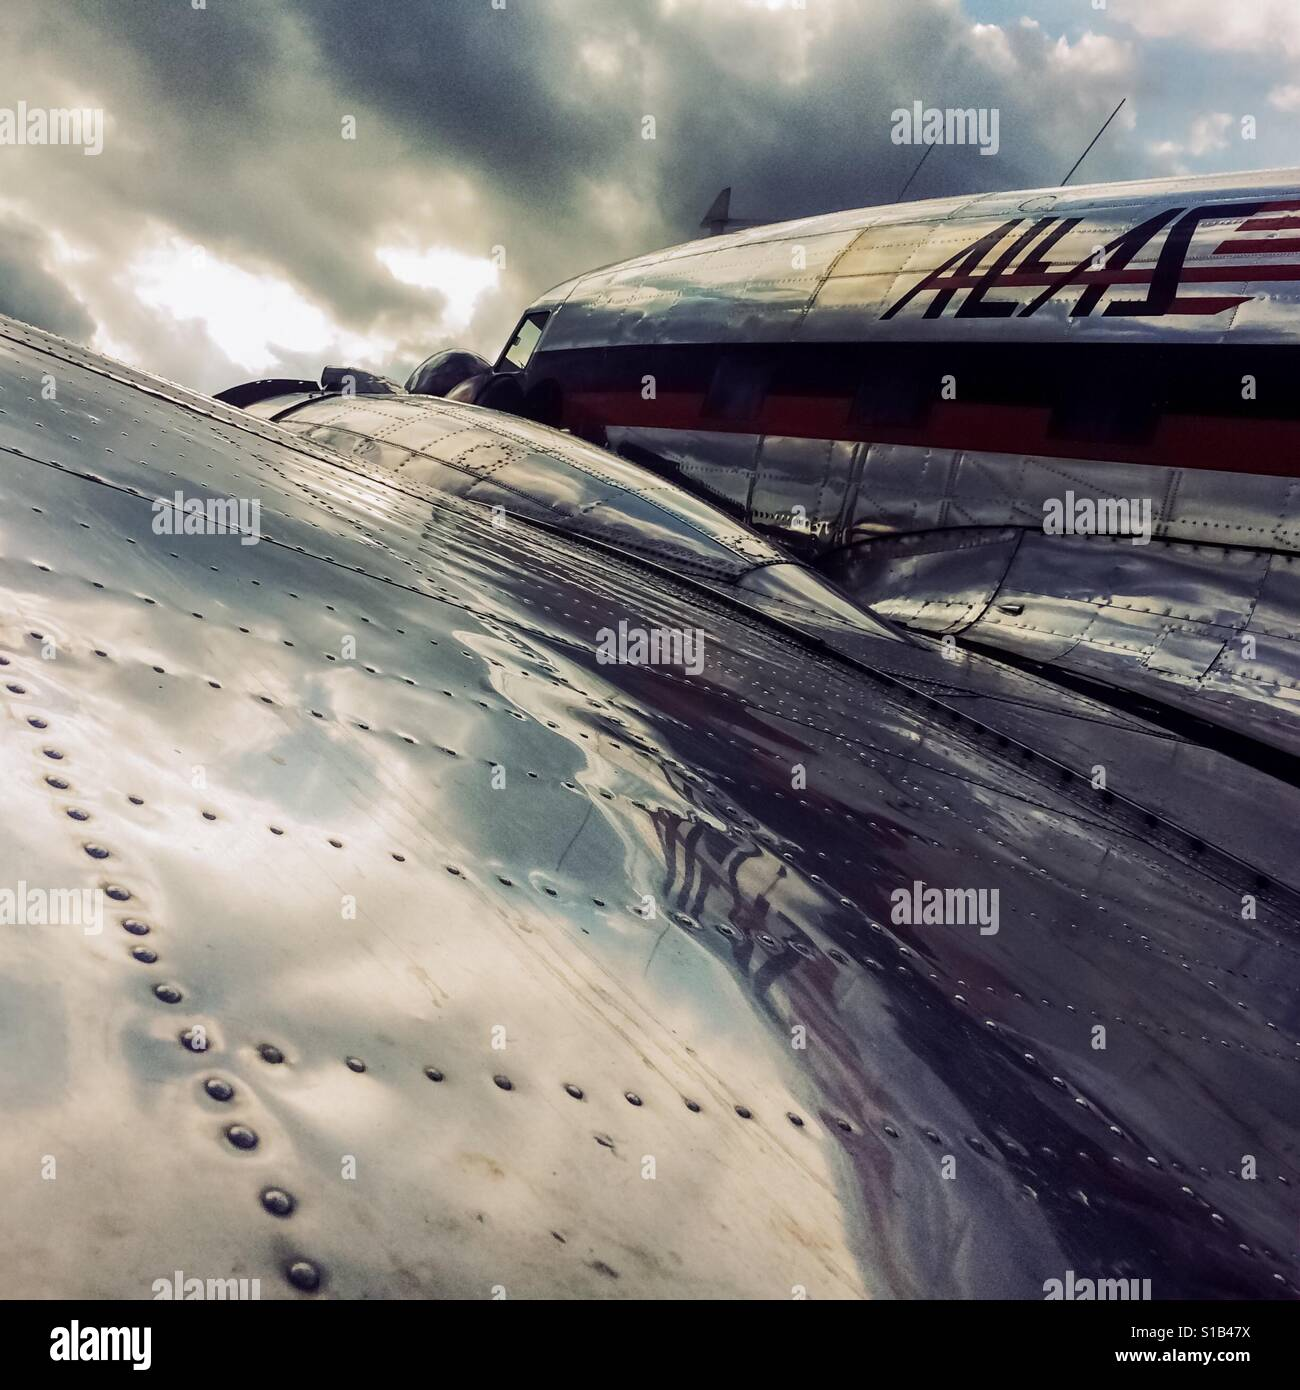 A Douglas DC-3 aircraft, operated by Allas airlines, is seen parked during the maintenance at the airport of Villavicencio, Stock Foto